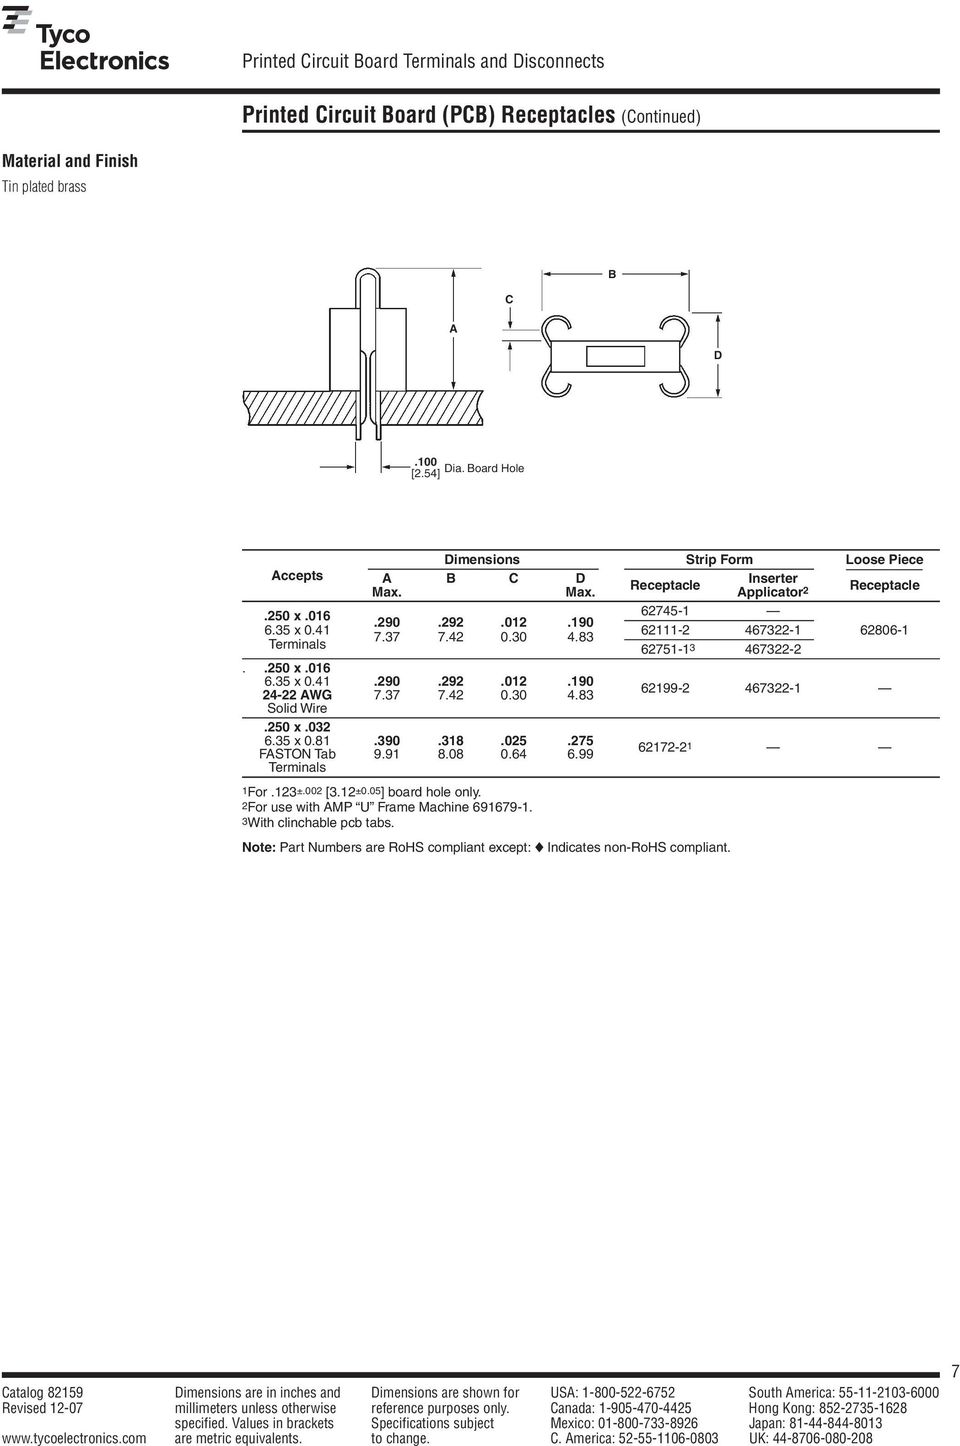 Printed Circuit Board Terminals And Disconnects Pdf Place The In Cavity Slot Battery Pack Into 83 62199 2 467322 1 Solid Wire250 X032 635 X